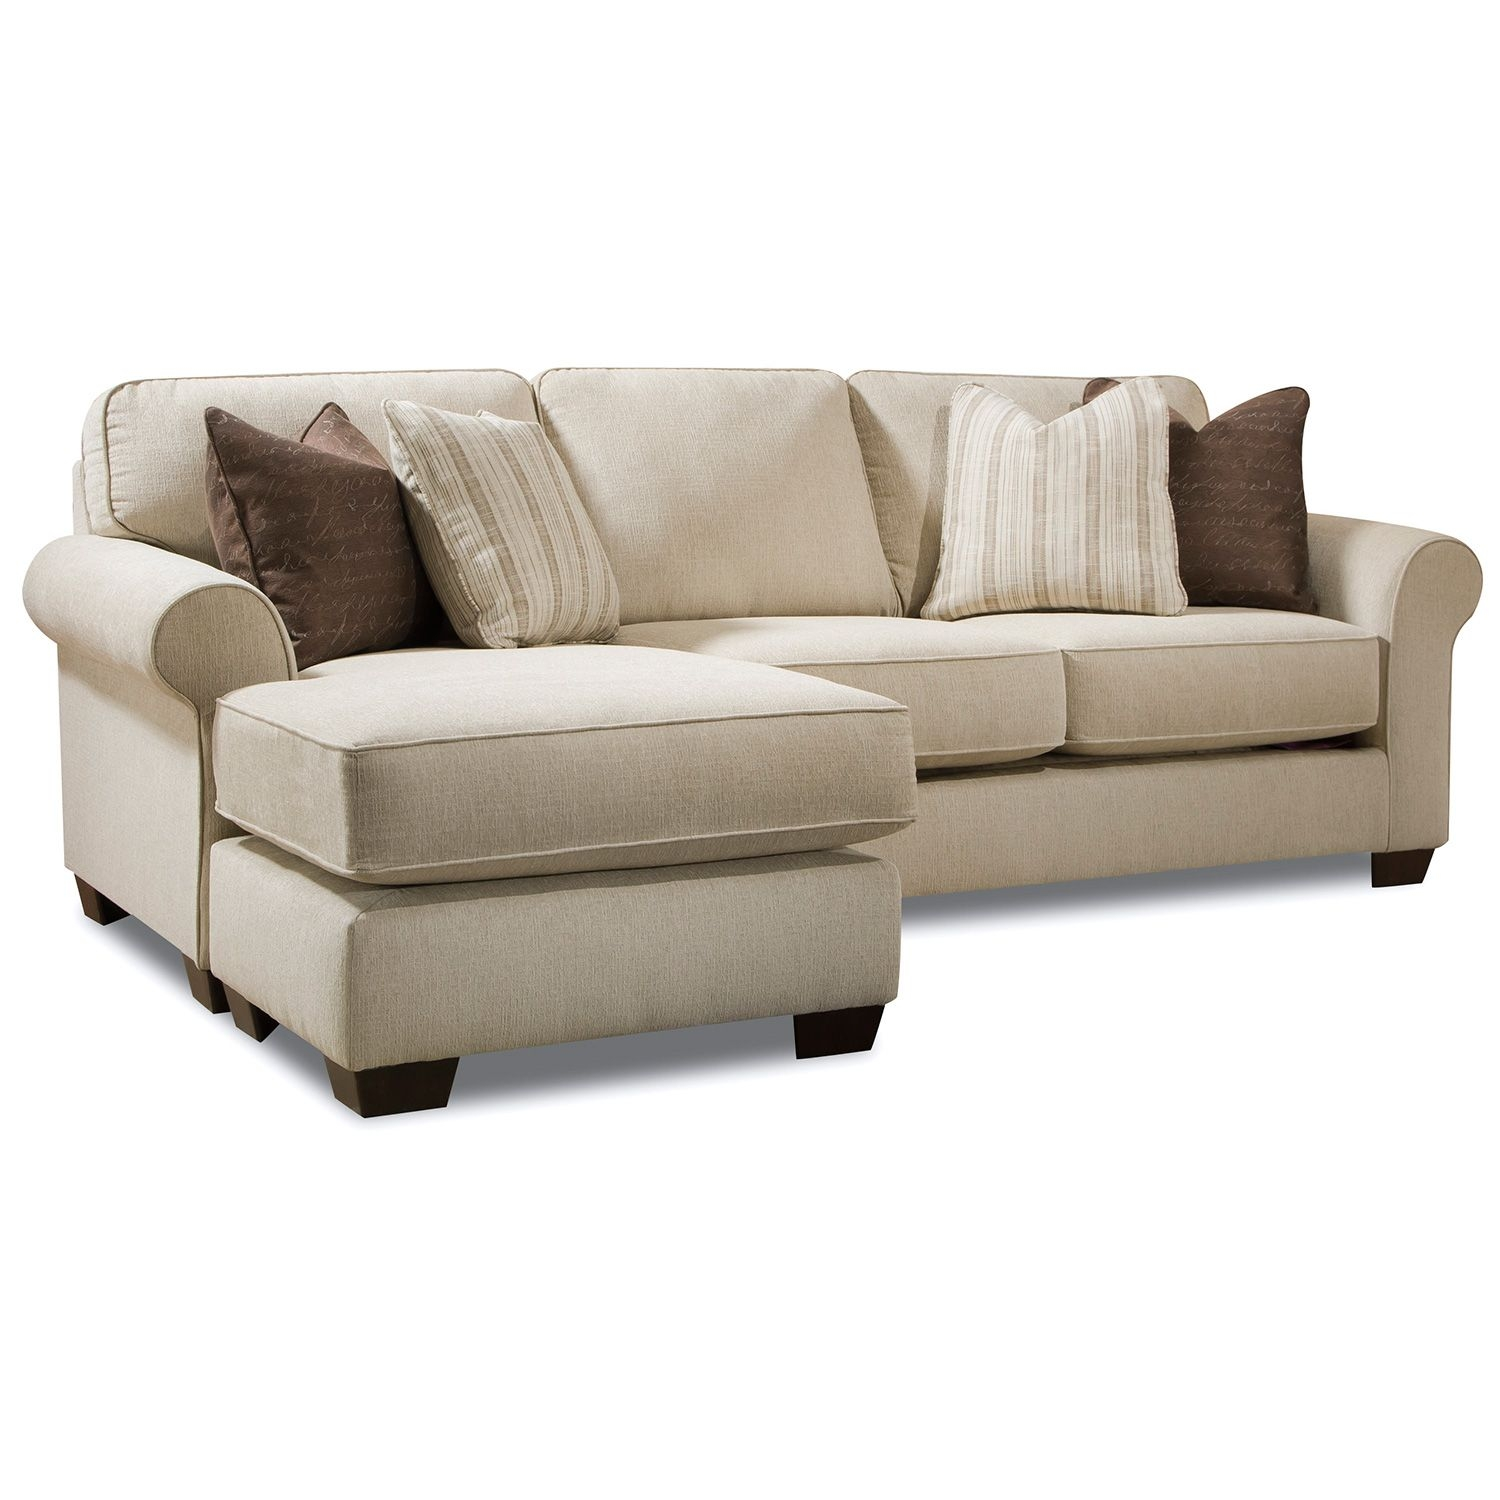 Berkline Sofas Sam S Club Hereo Sofa With Regard To Berkline Sectional Sofa (Image 5 of 15)